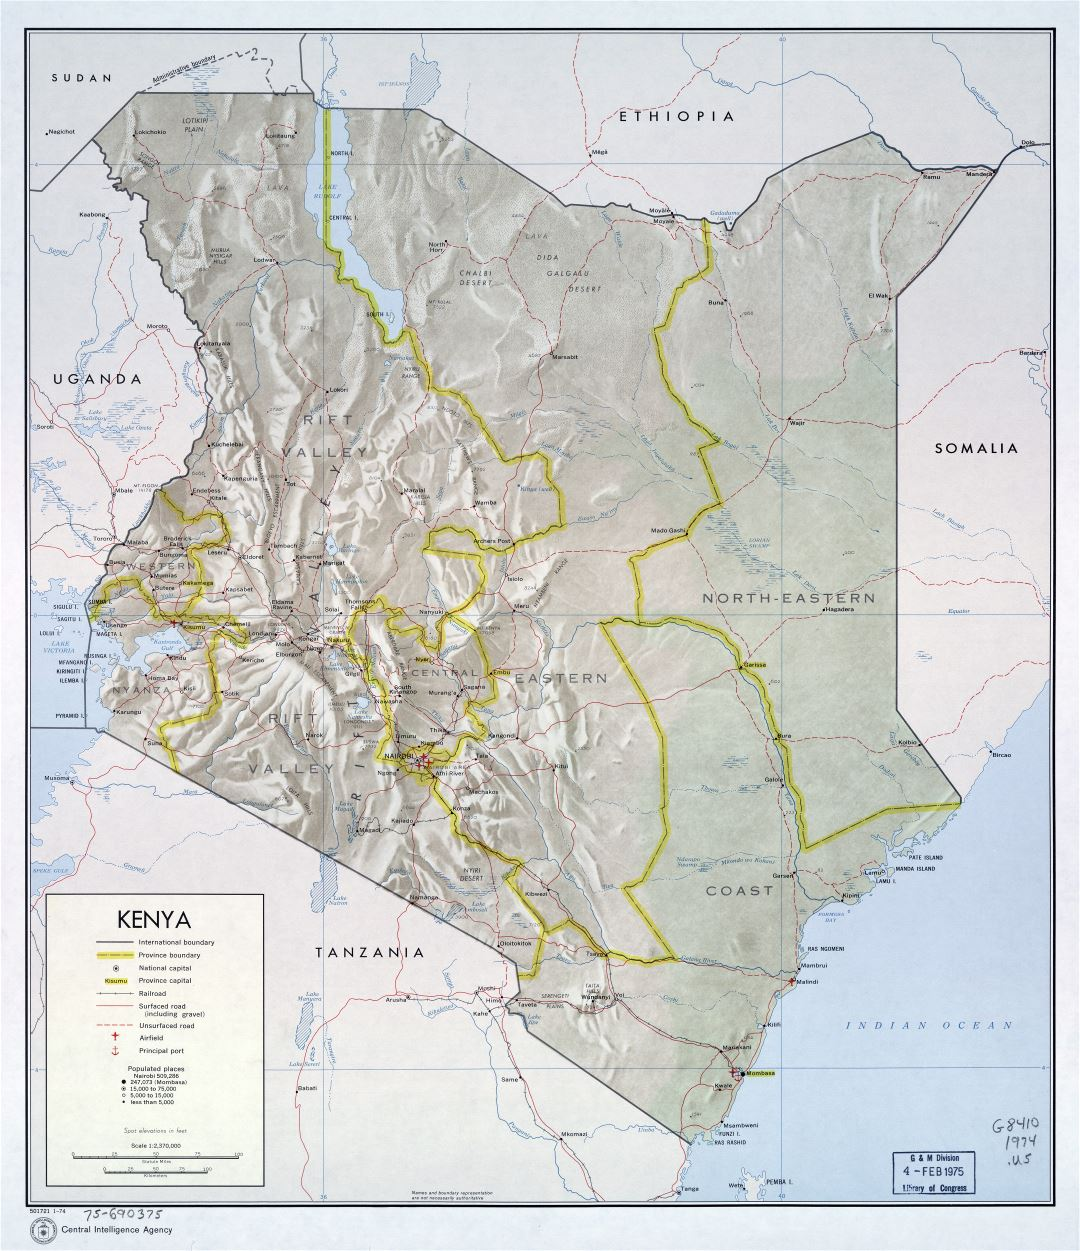 Large scale political and administrative map of Kenya with relief, roads, railroads, cities, ports and airports - 1974